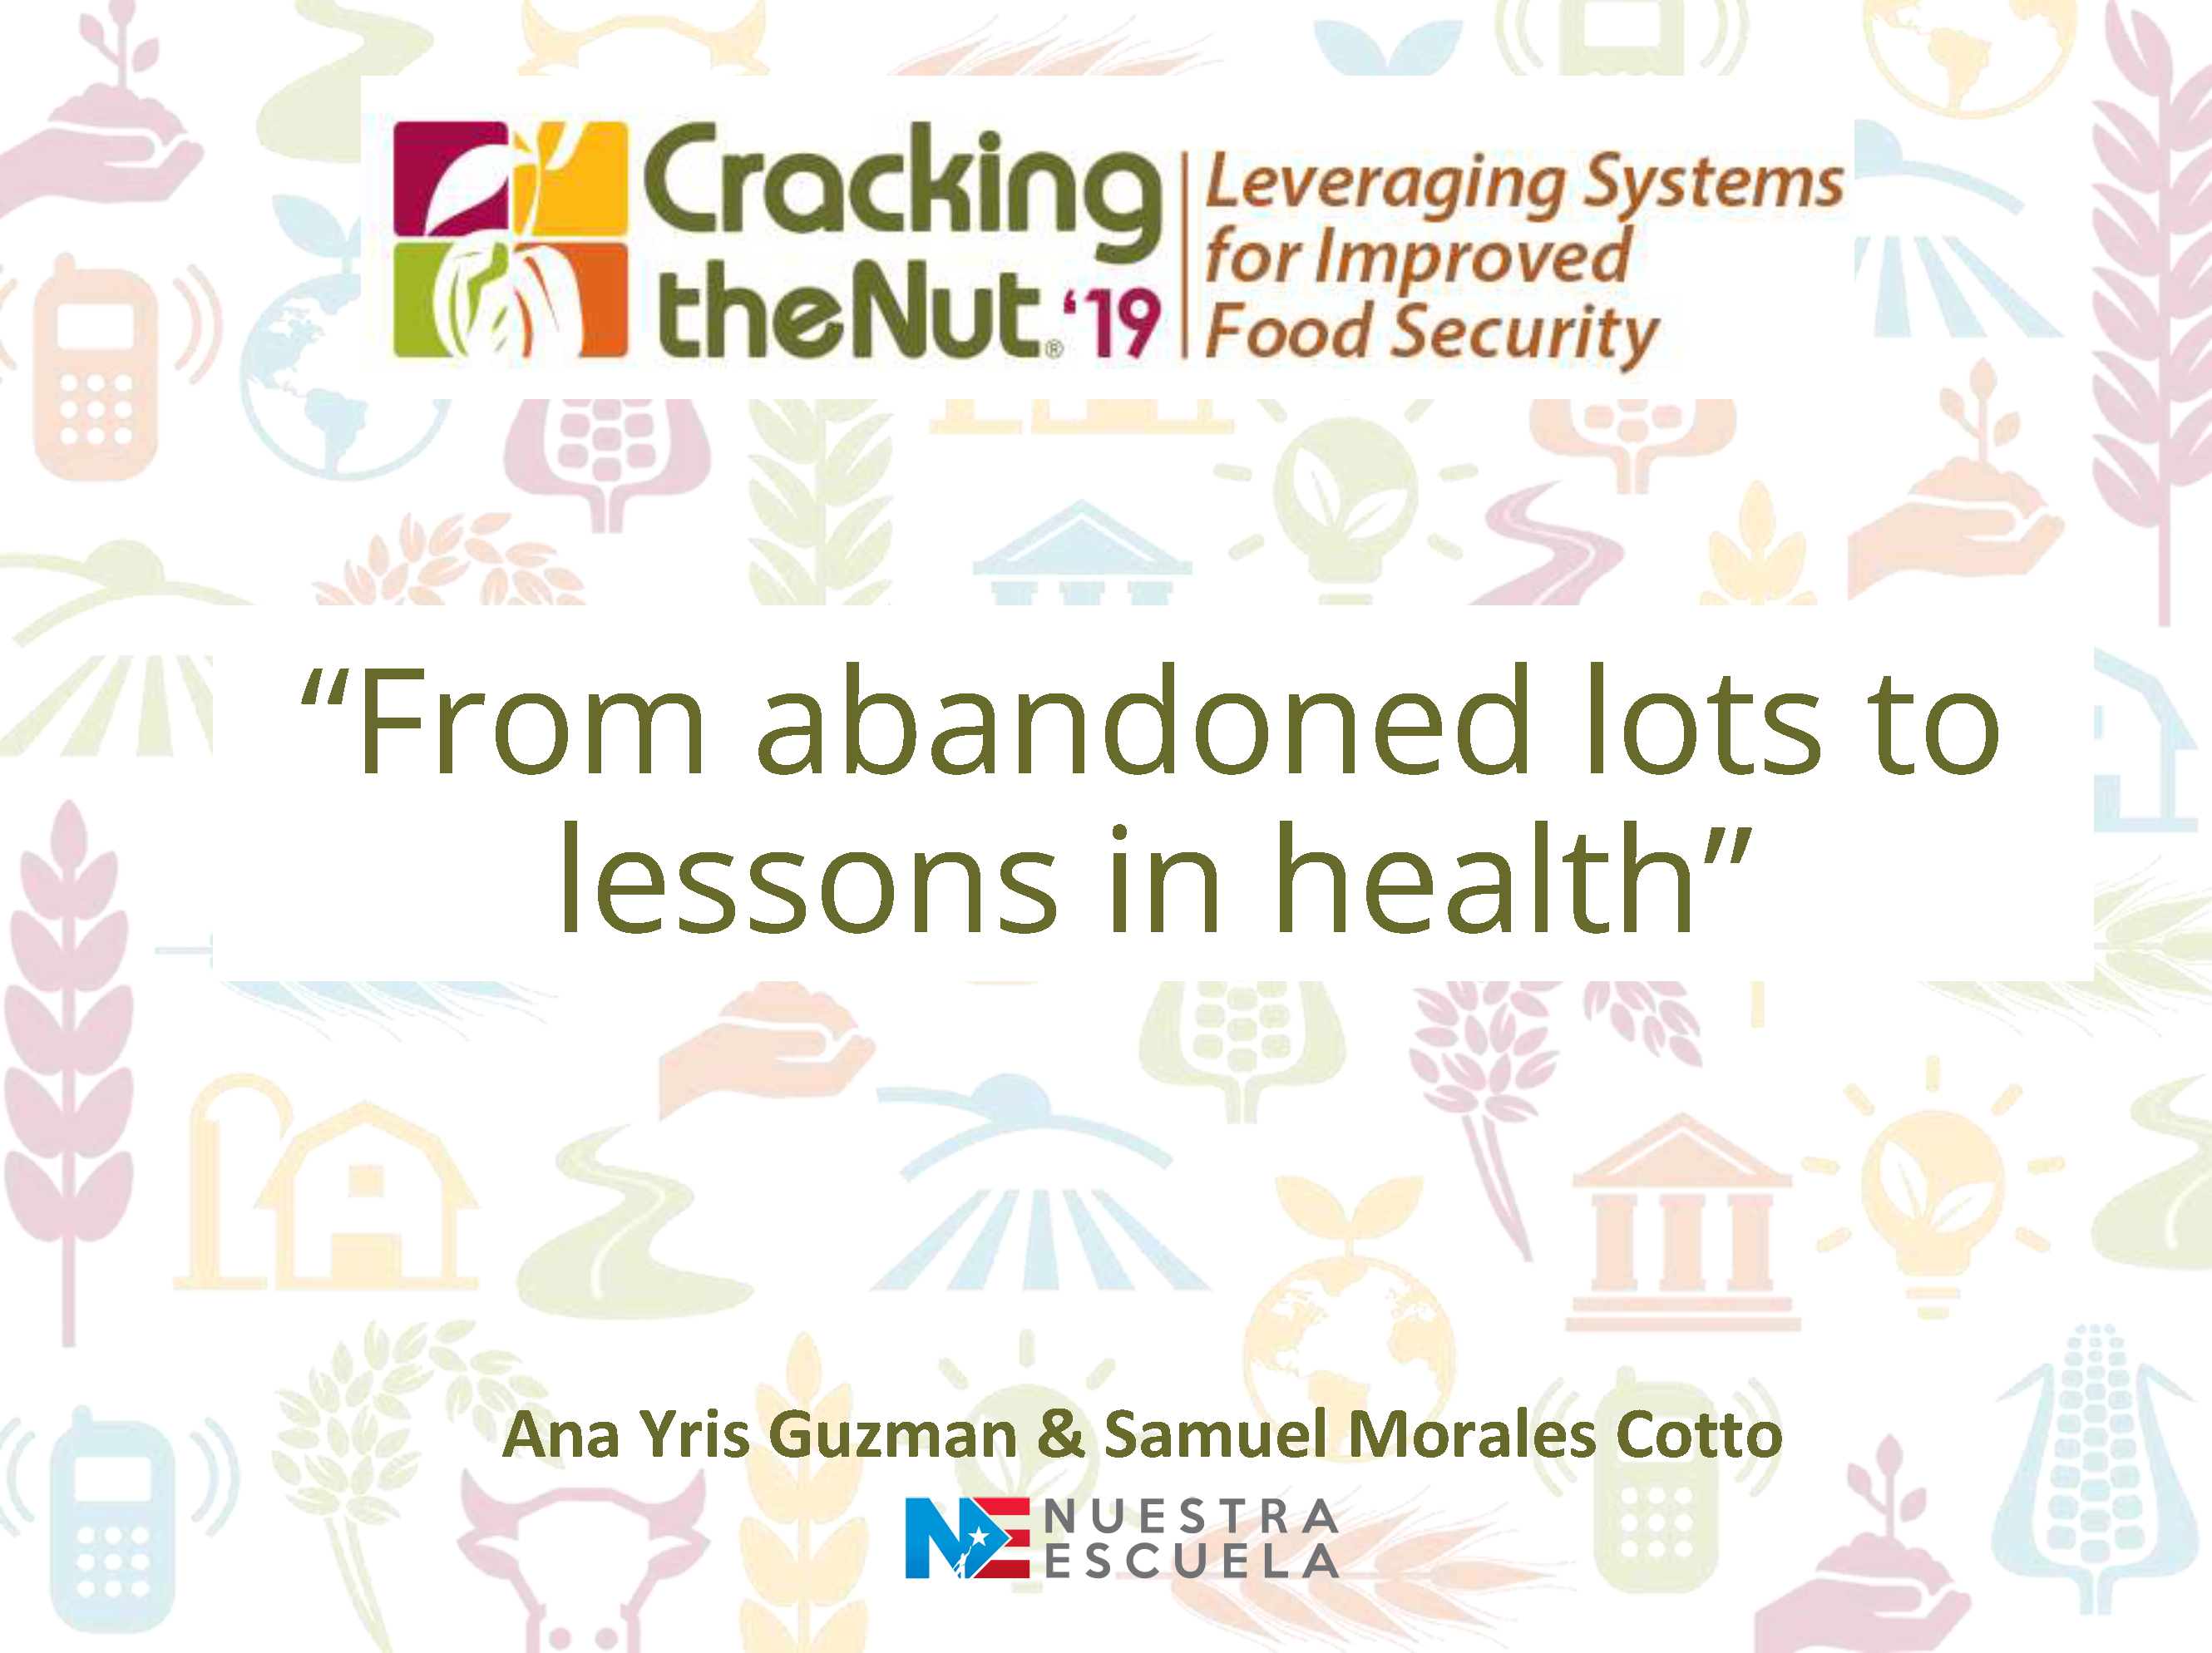 Session 2.4: Nuestra Escuela: From Abandoned Lots to Lessons in Health